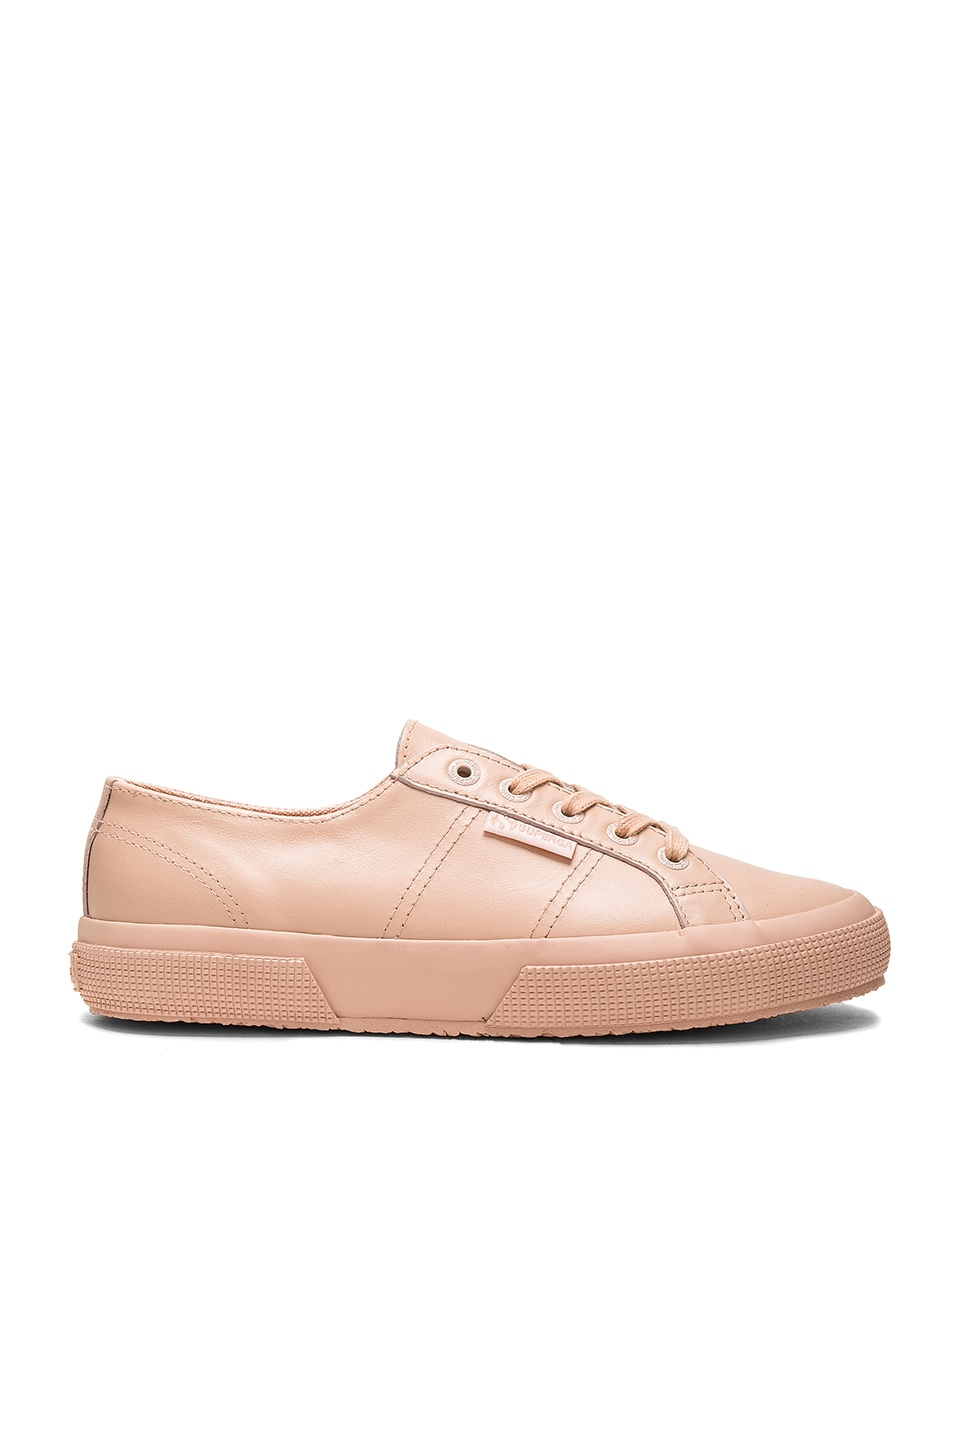 Superga 2750 Sneaker in Total Blossom Pink